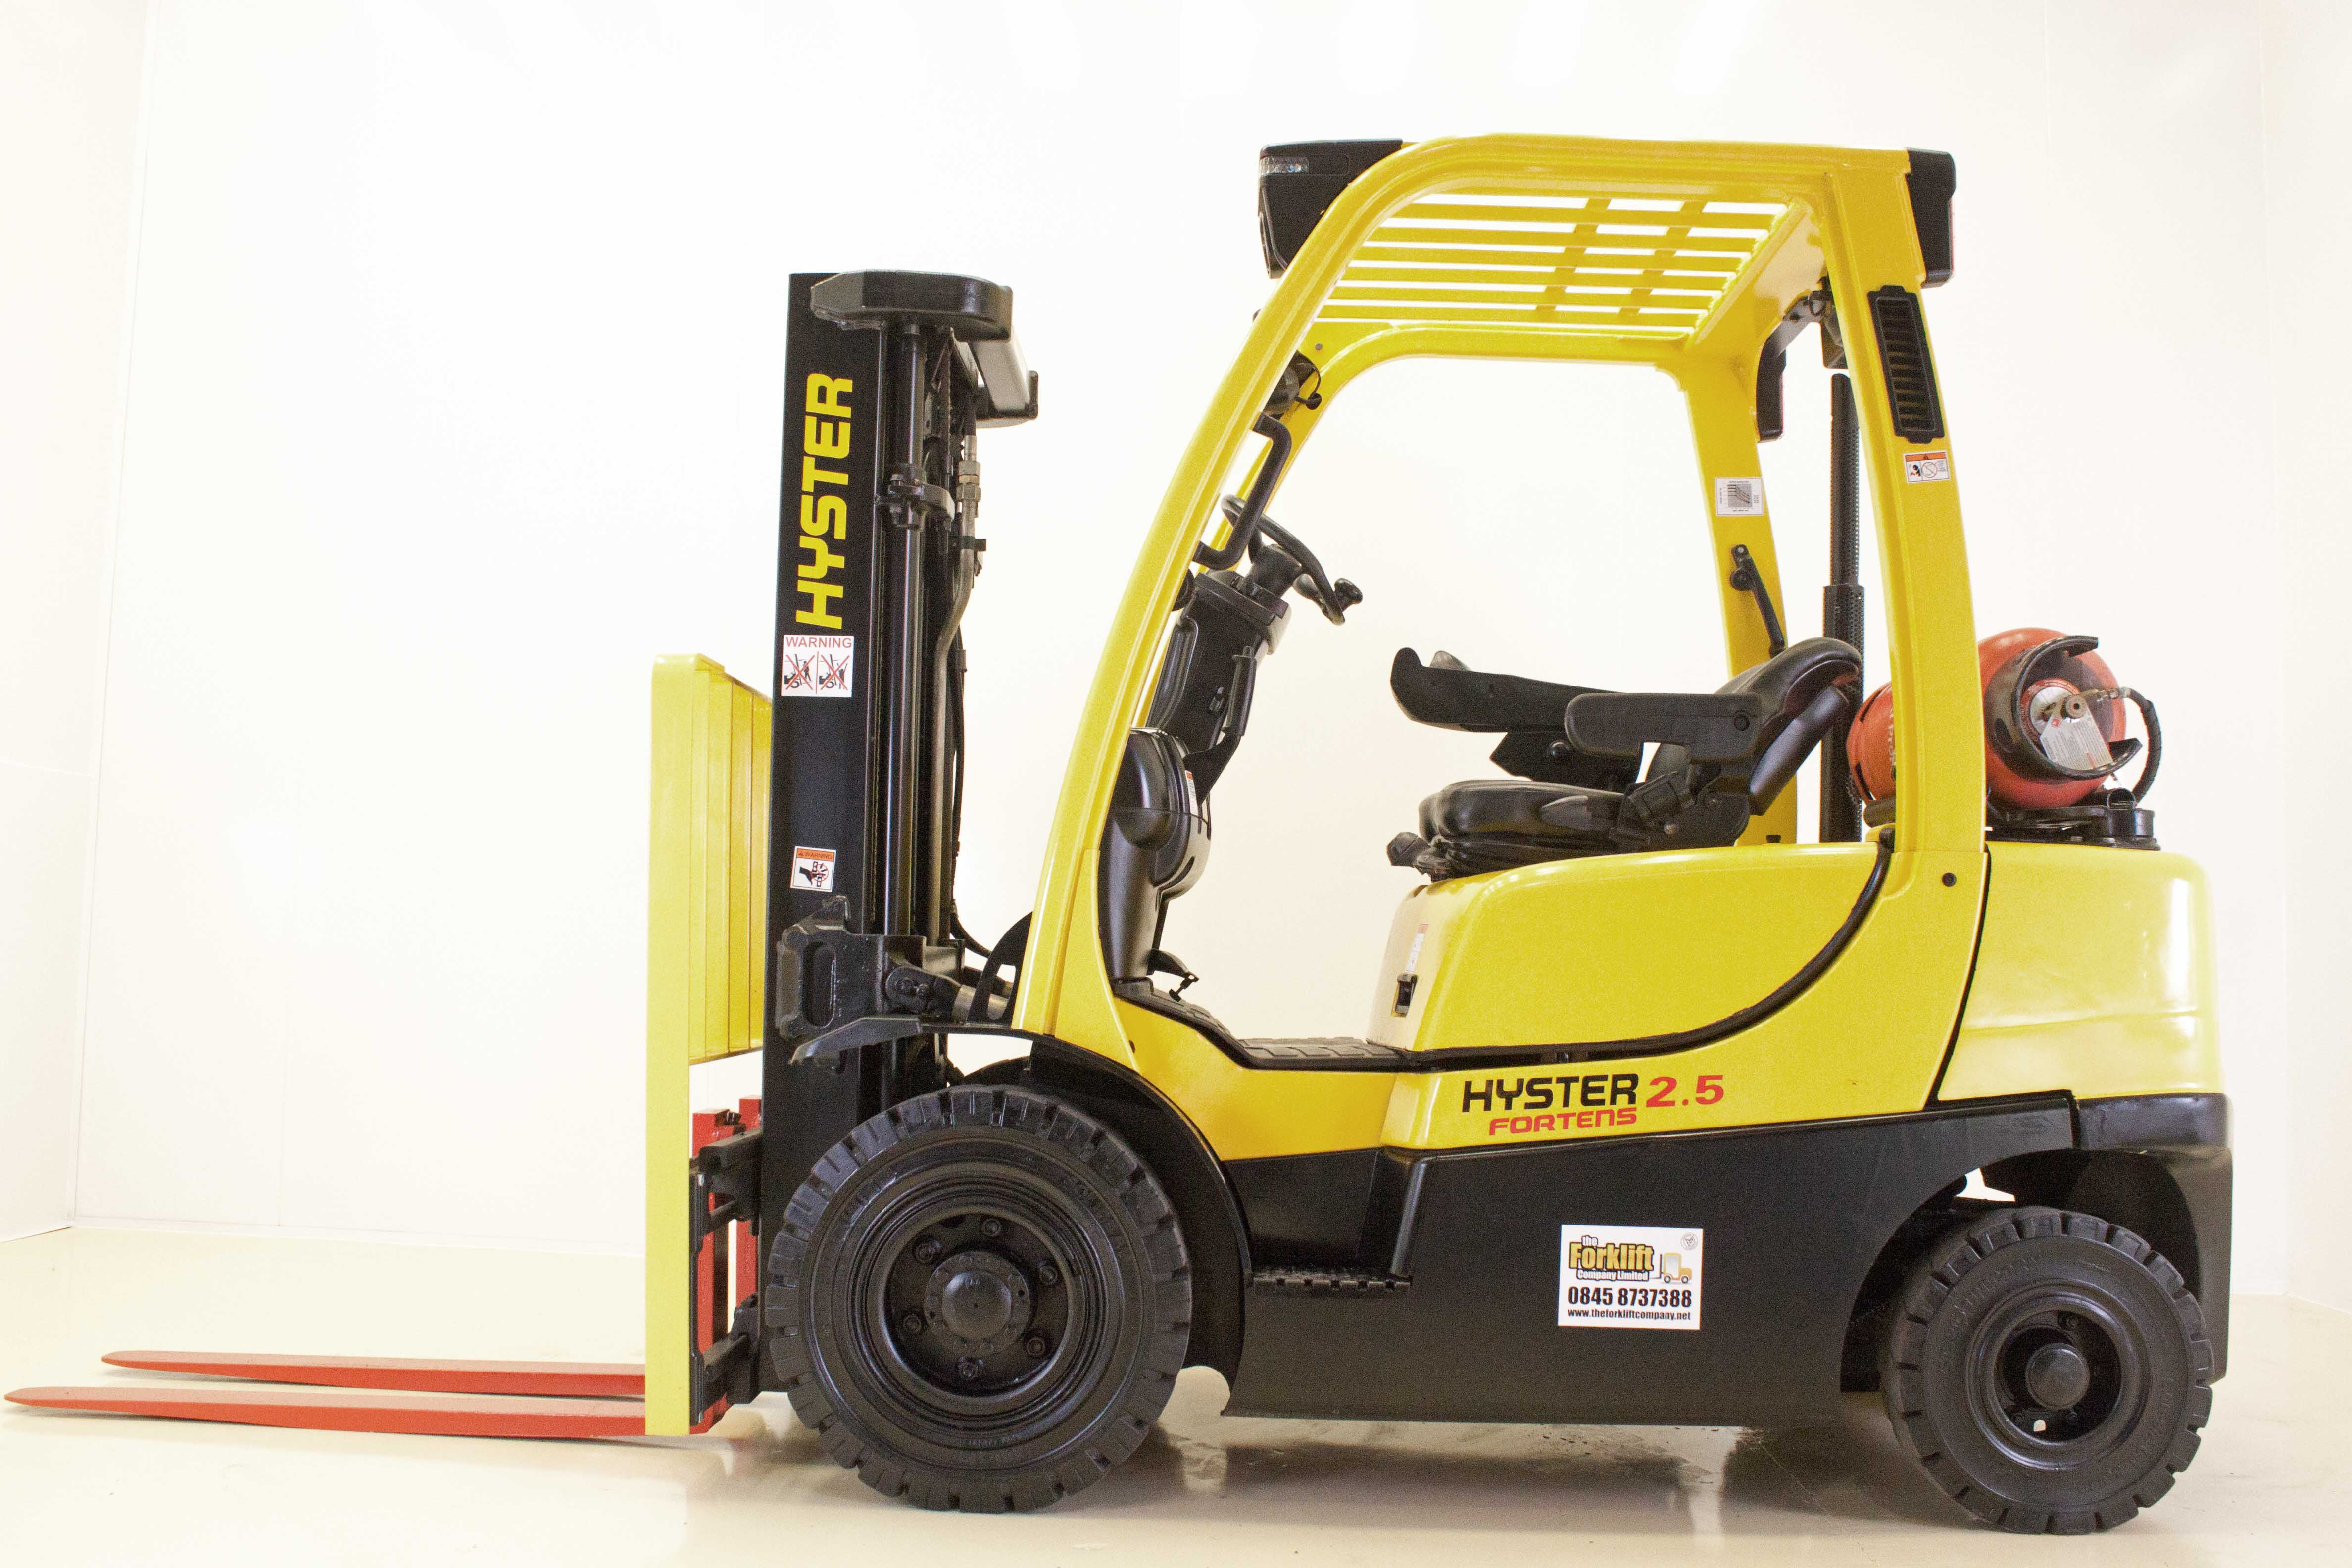 Forklift Hire - The Forklift Company